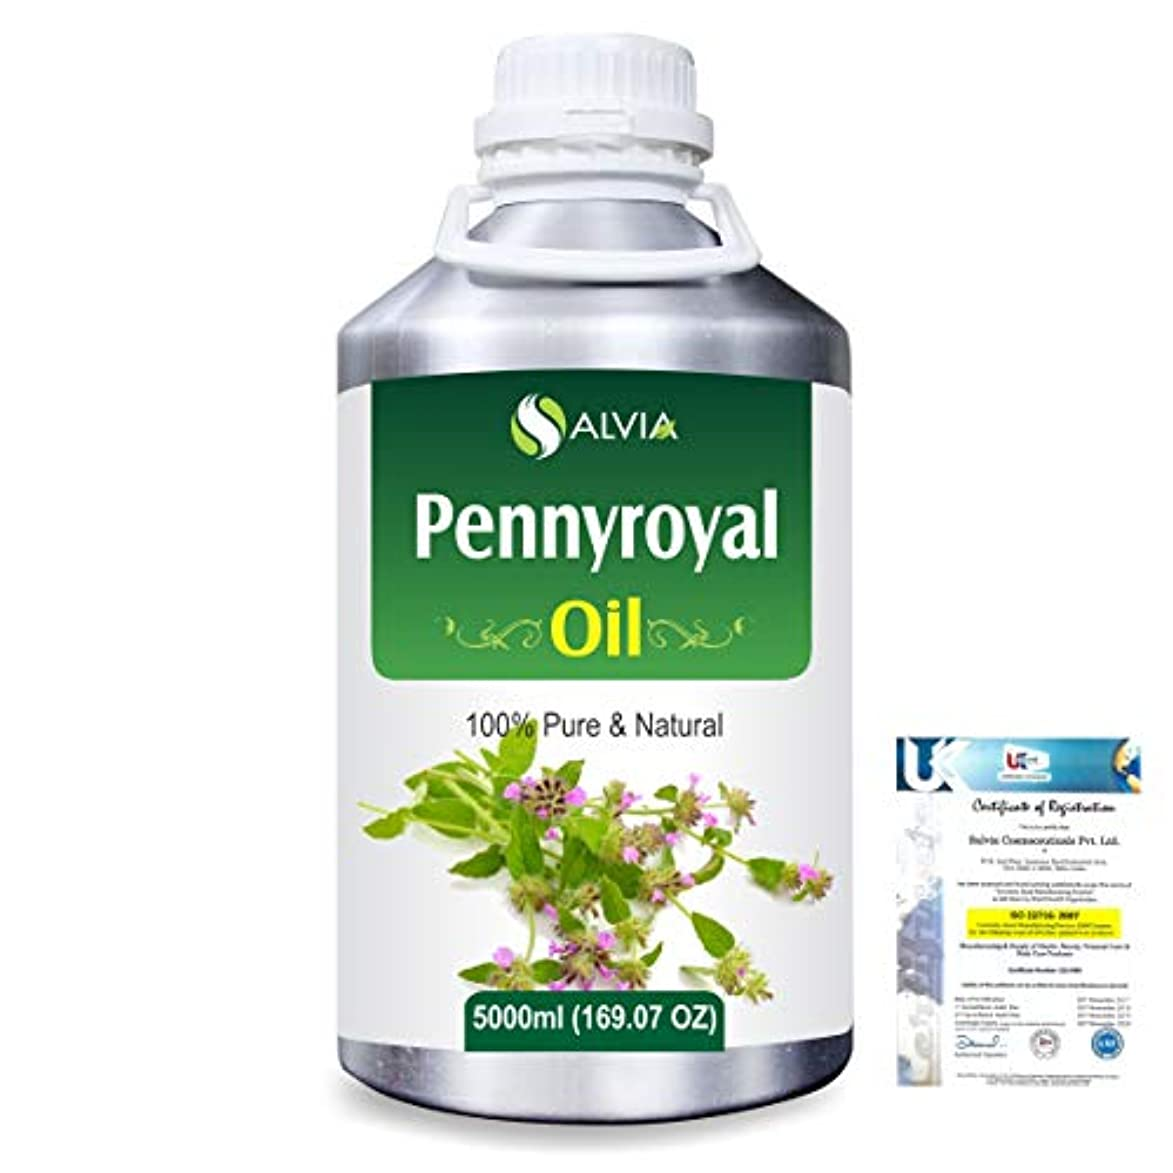 頬骨にじみ出る誠実さPennyroyal (Mentha pulegium) 100% Natural Pure Essential Oil 5000ml/169fl.oz.